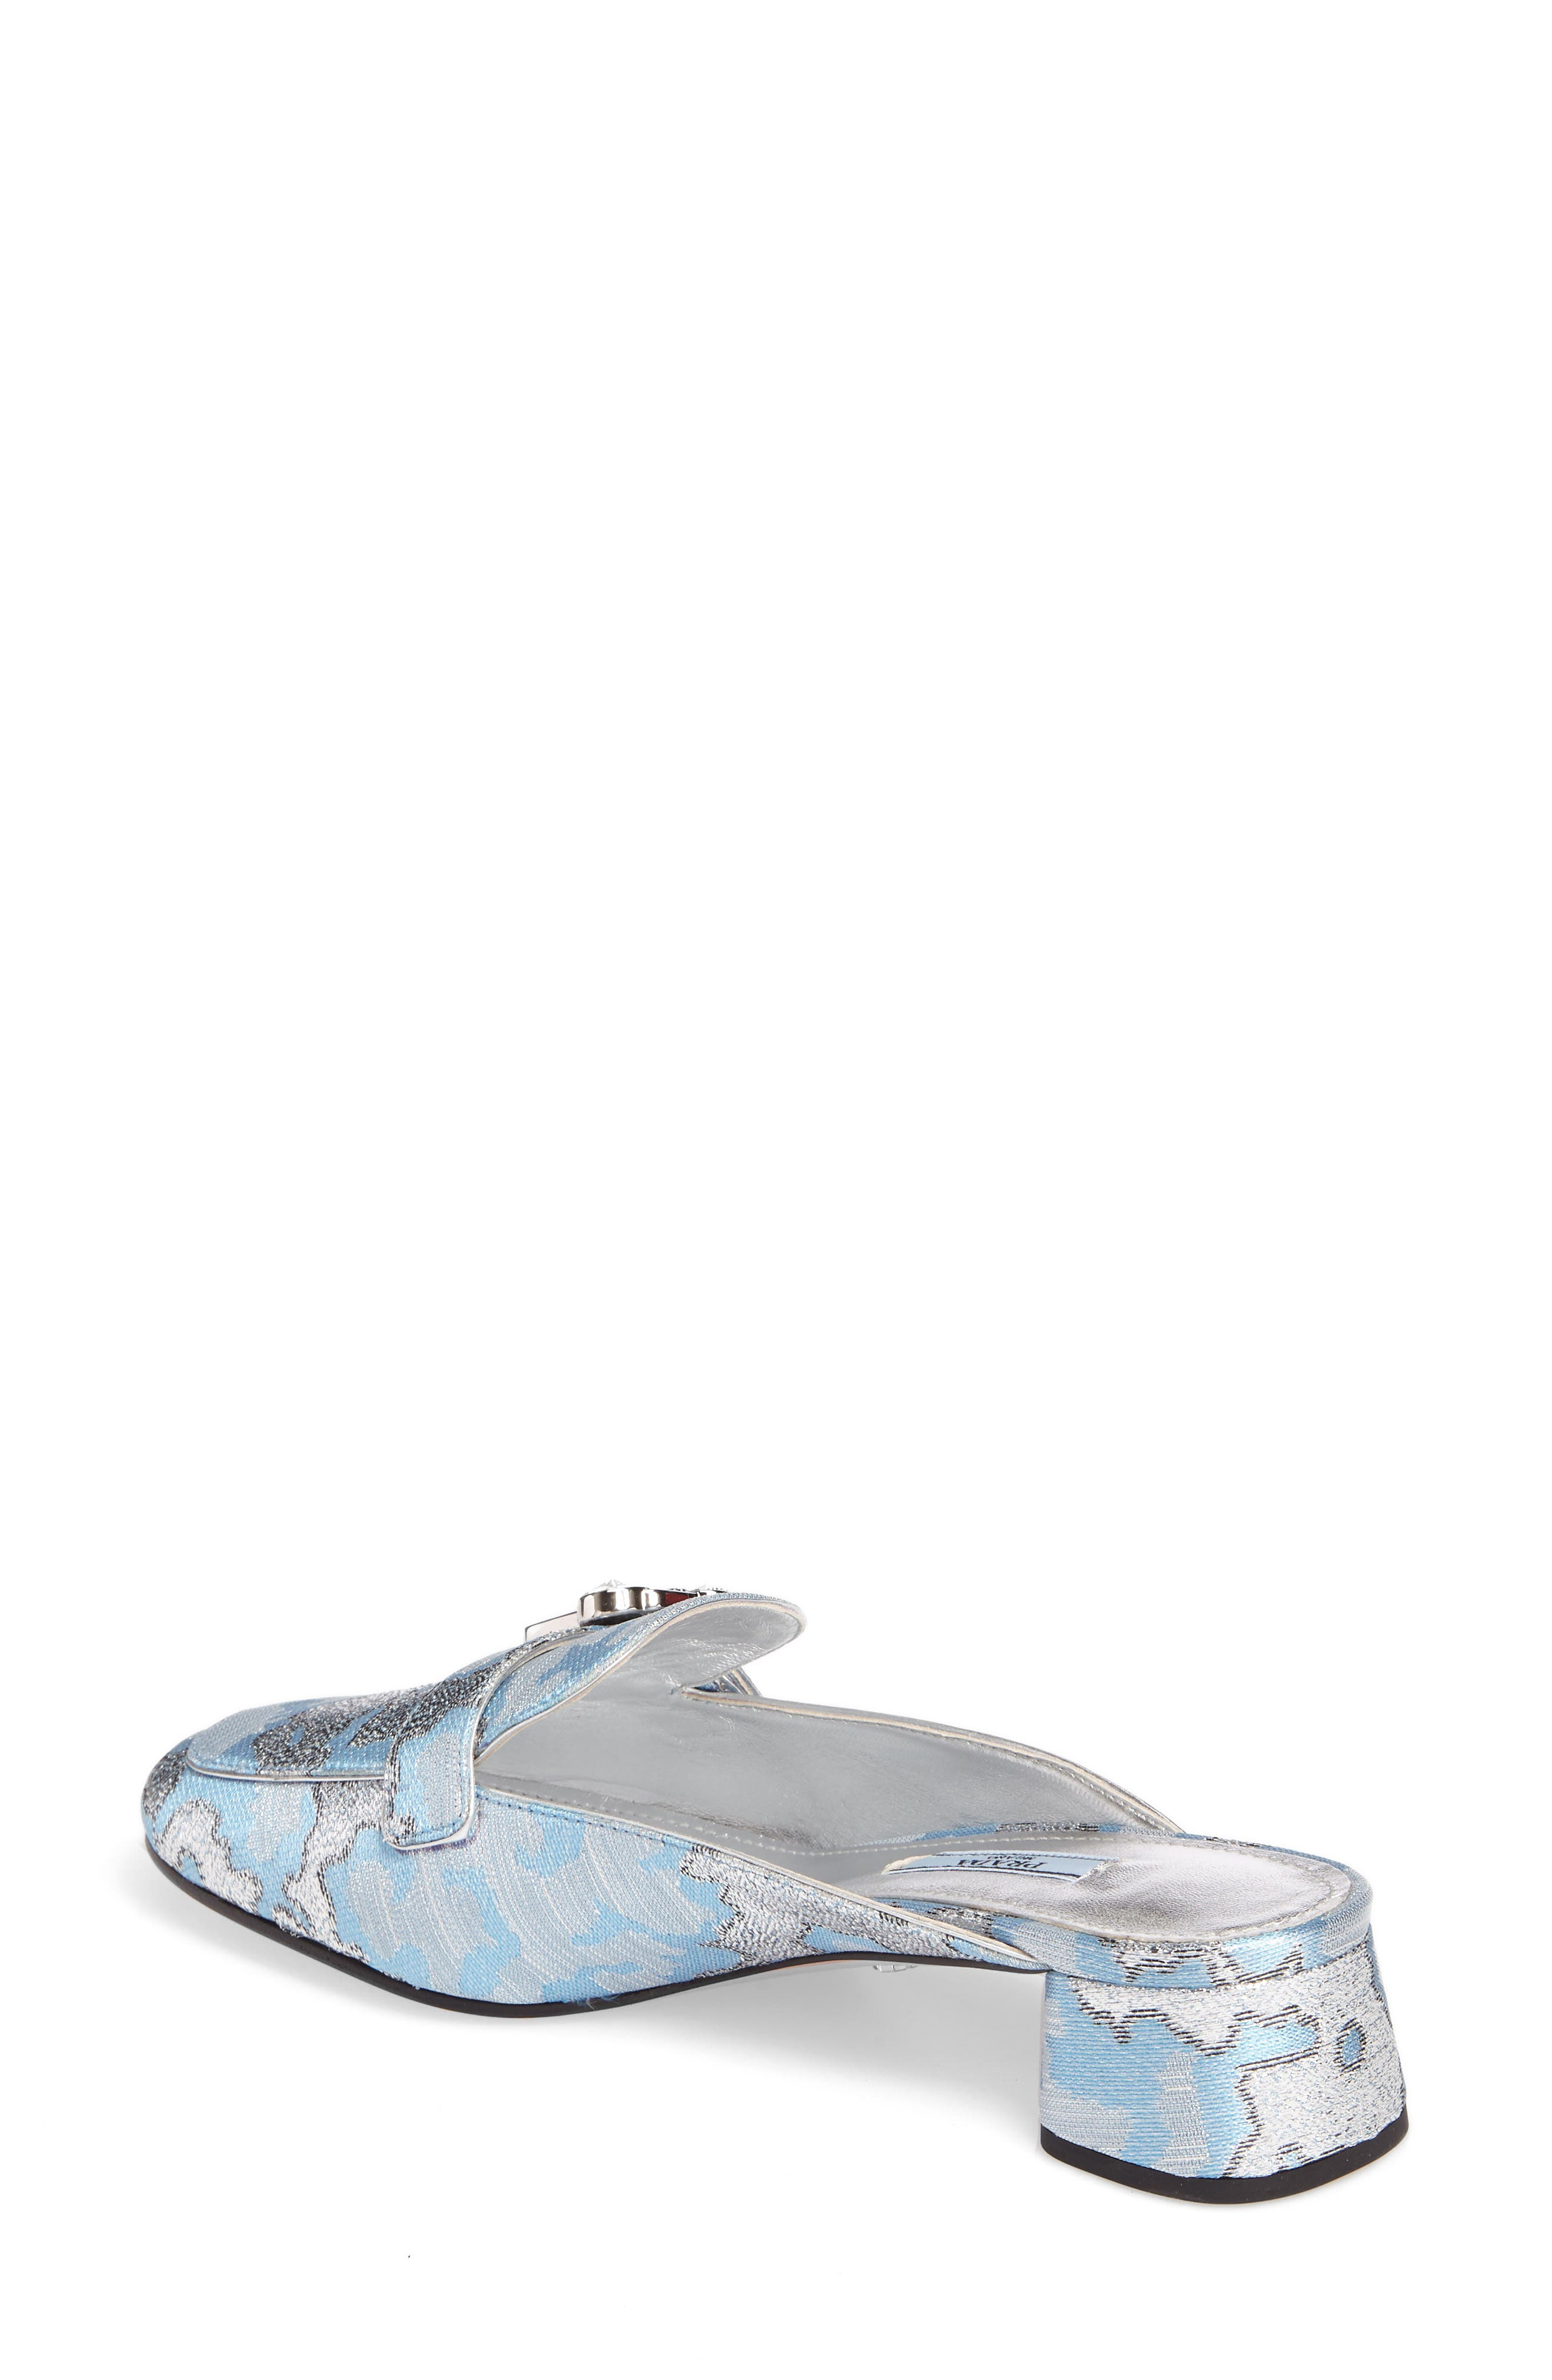 Crystal Buckle Loafer Mule,                             Alternate thumbnail 2, color,